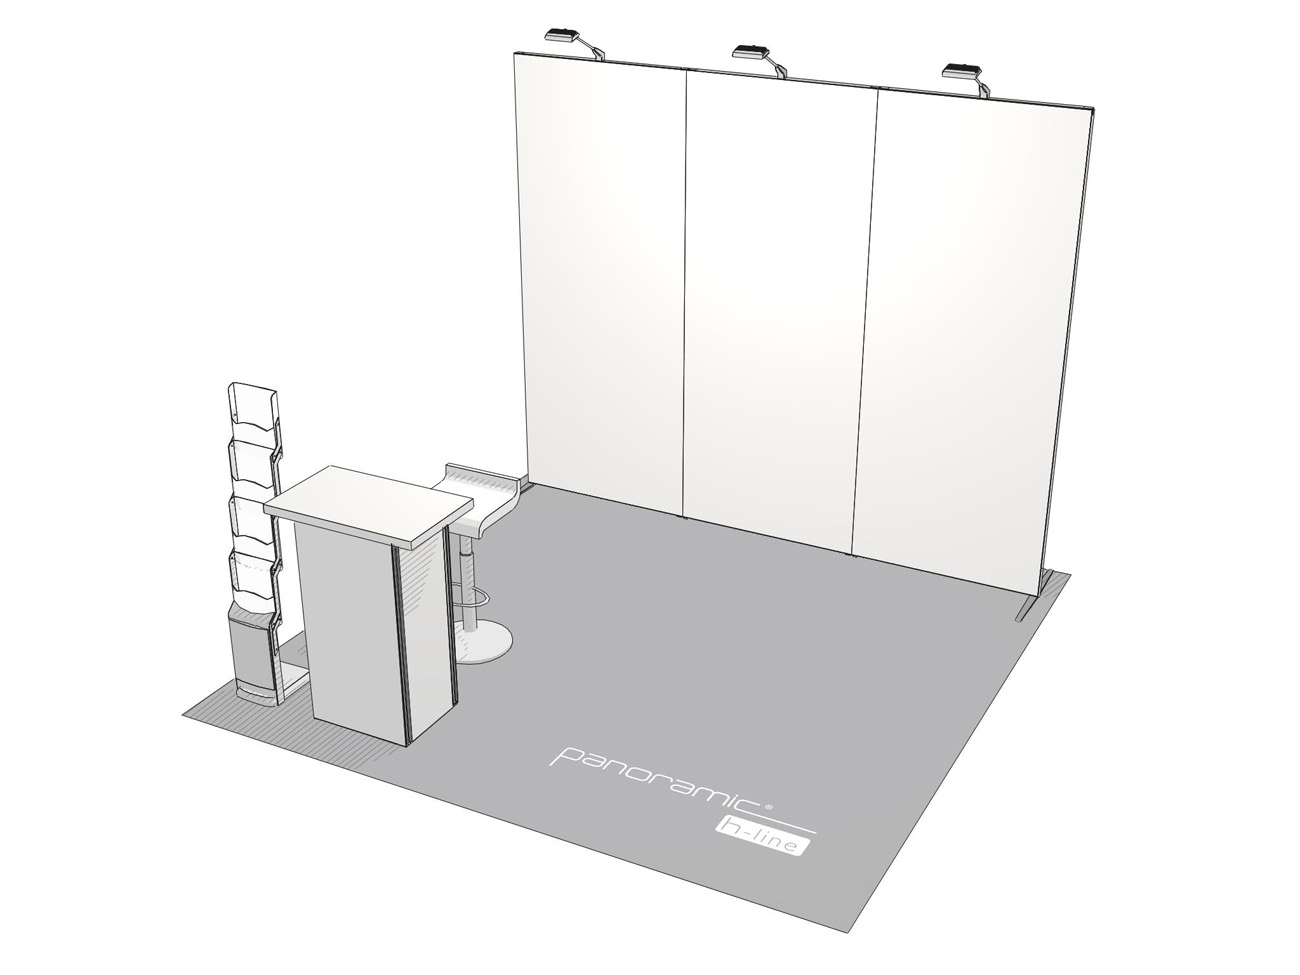 Exhibition Booth Size : Tradeshow booth kits library u starline exhibits international